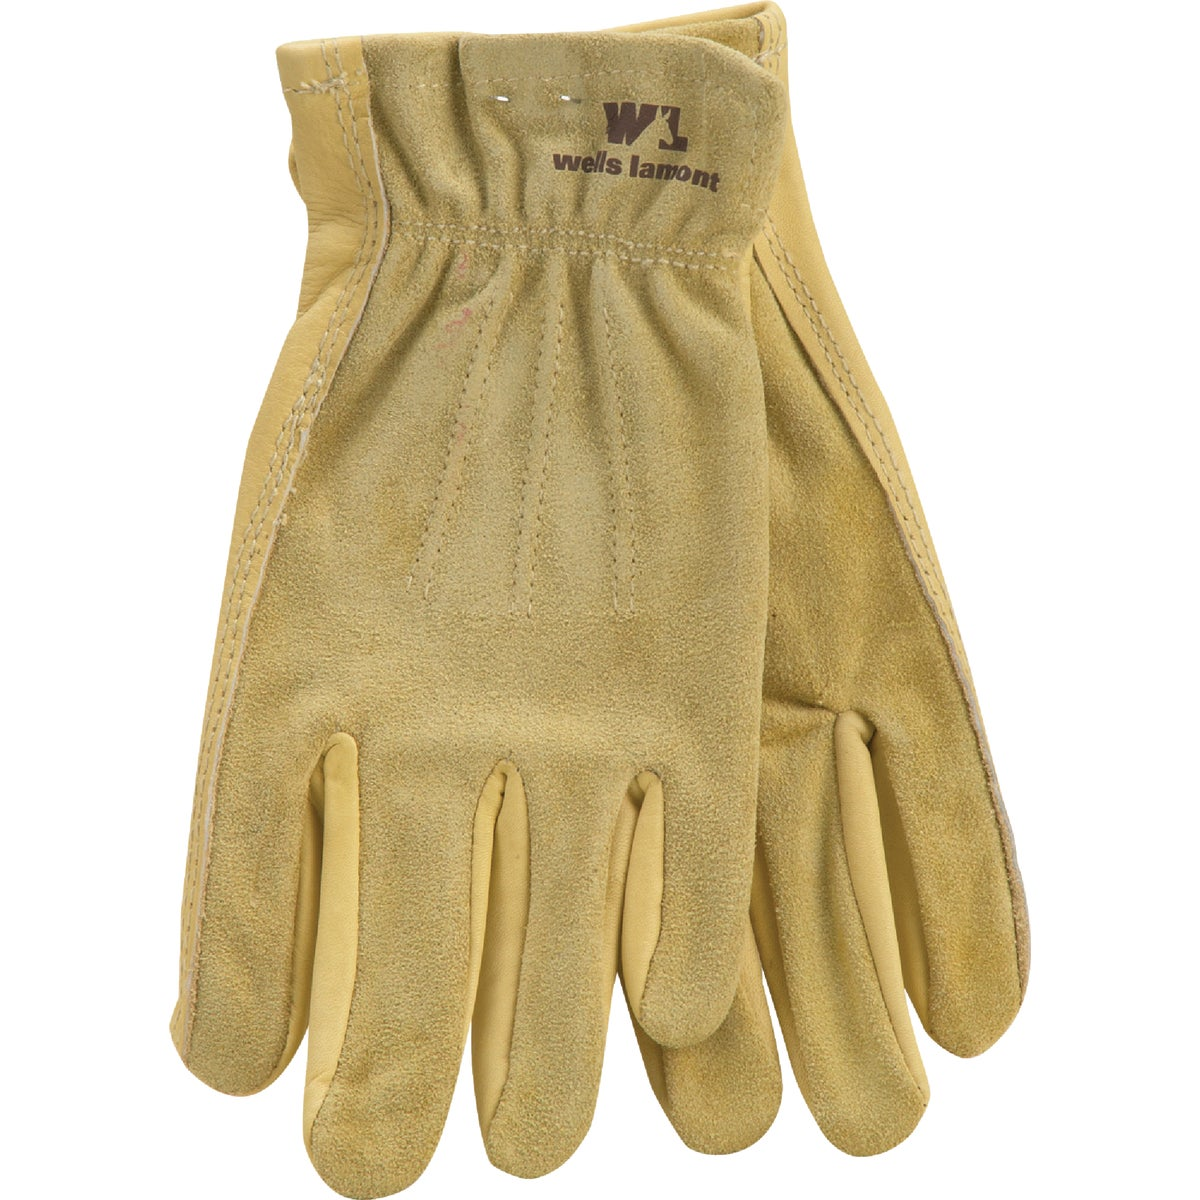 SML SPLIT COWHIDE GLOVE - 1124S by Wells Lamont